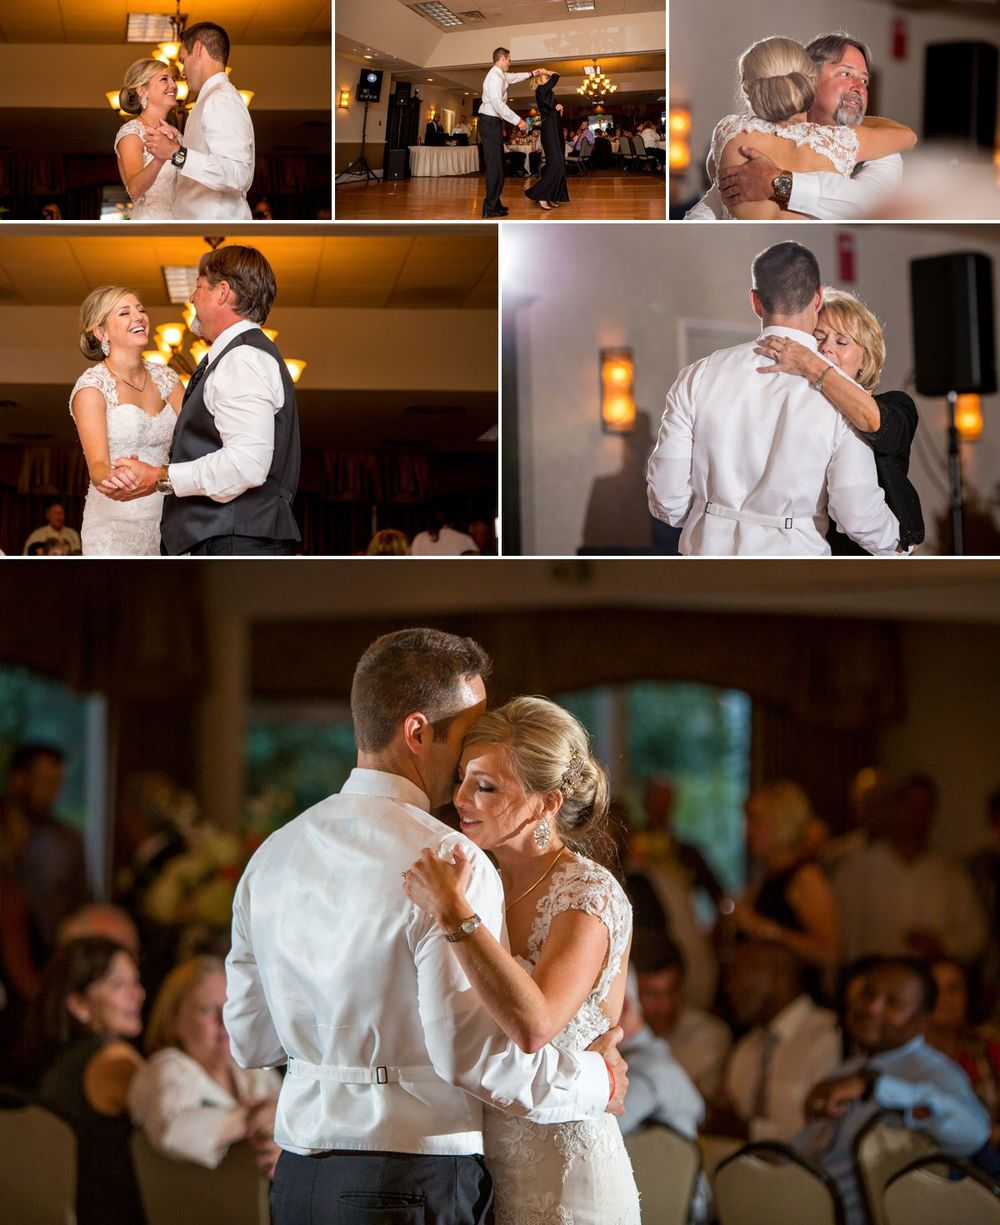 First dances for all!